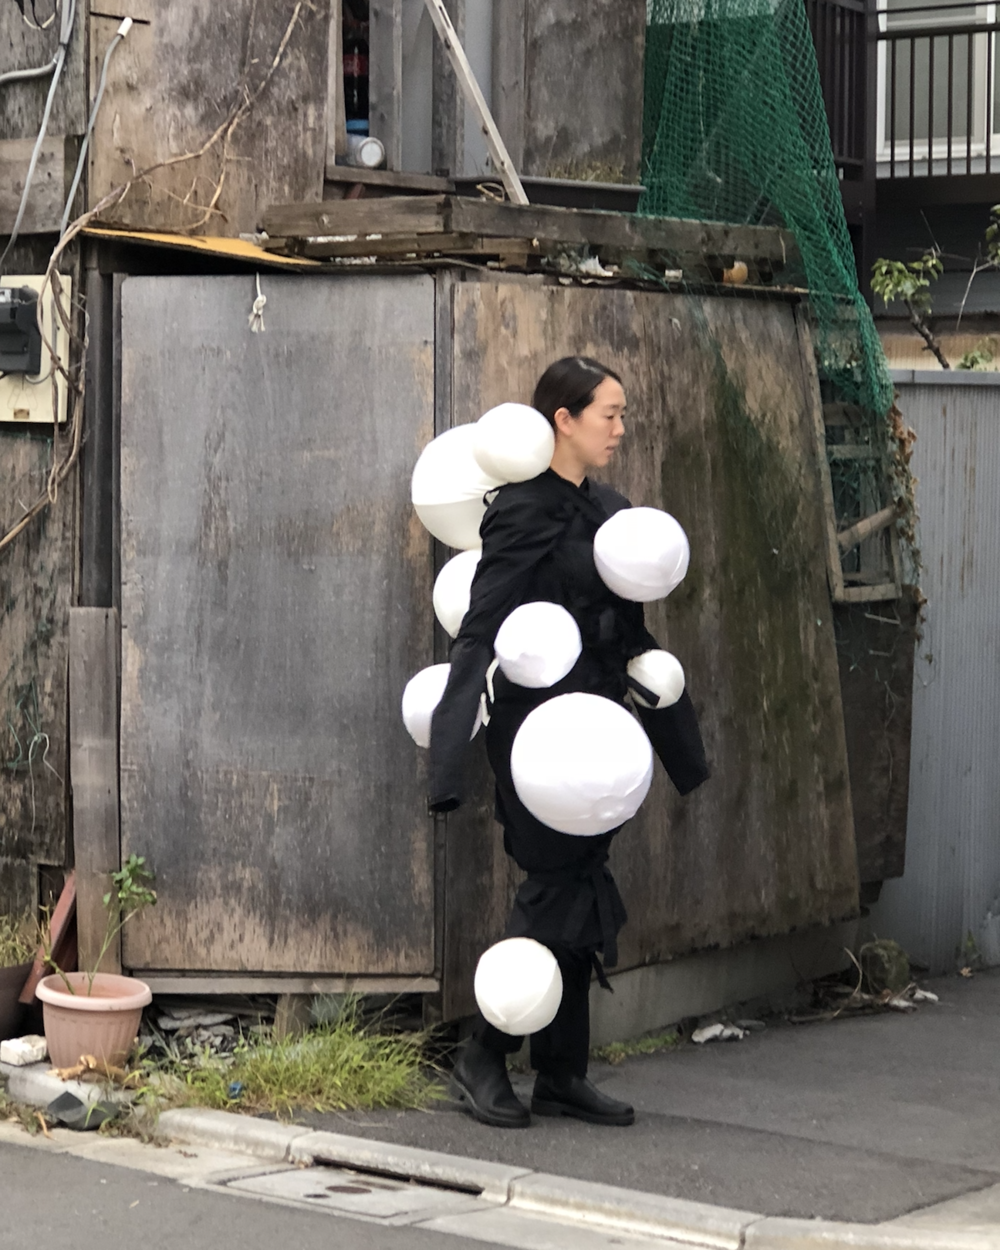 Your thought bubbles  2018  silk, cotton, rubber  installation dimensions variable  performer: anna kuroda